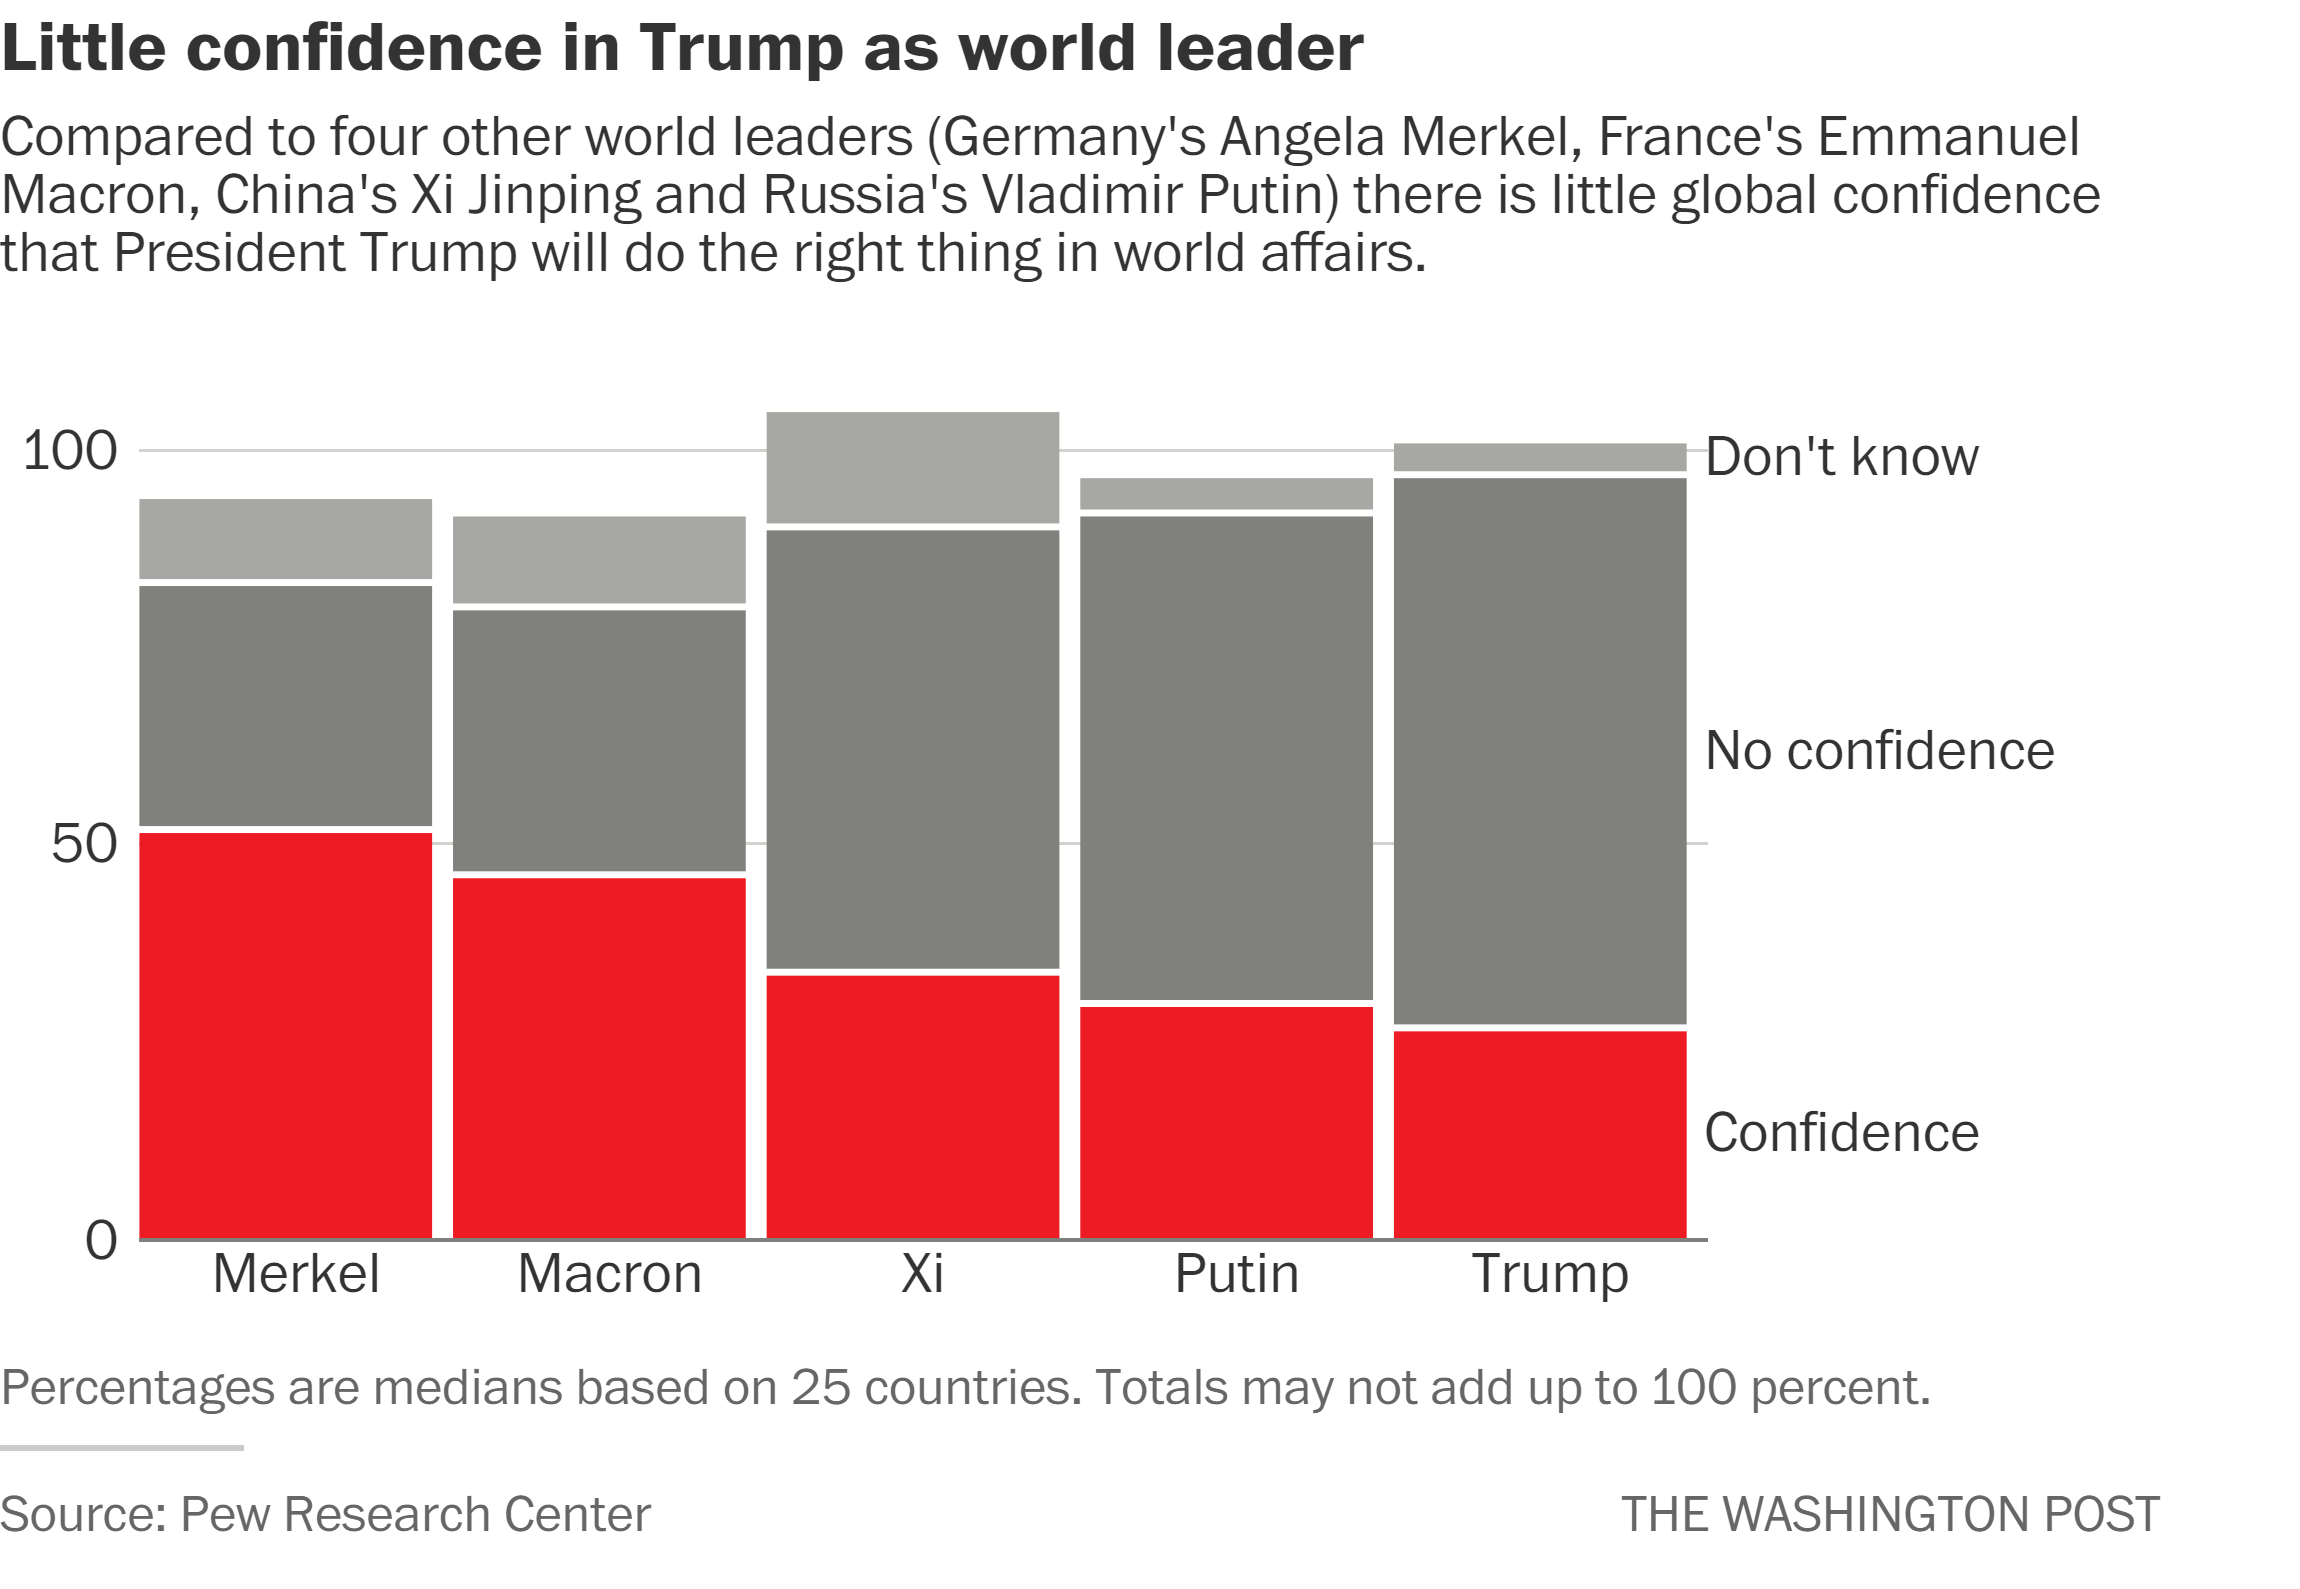 The rating of trust of world leaders